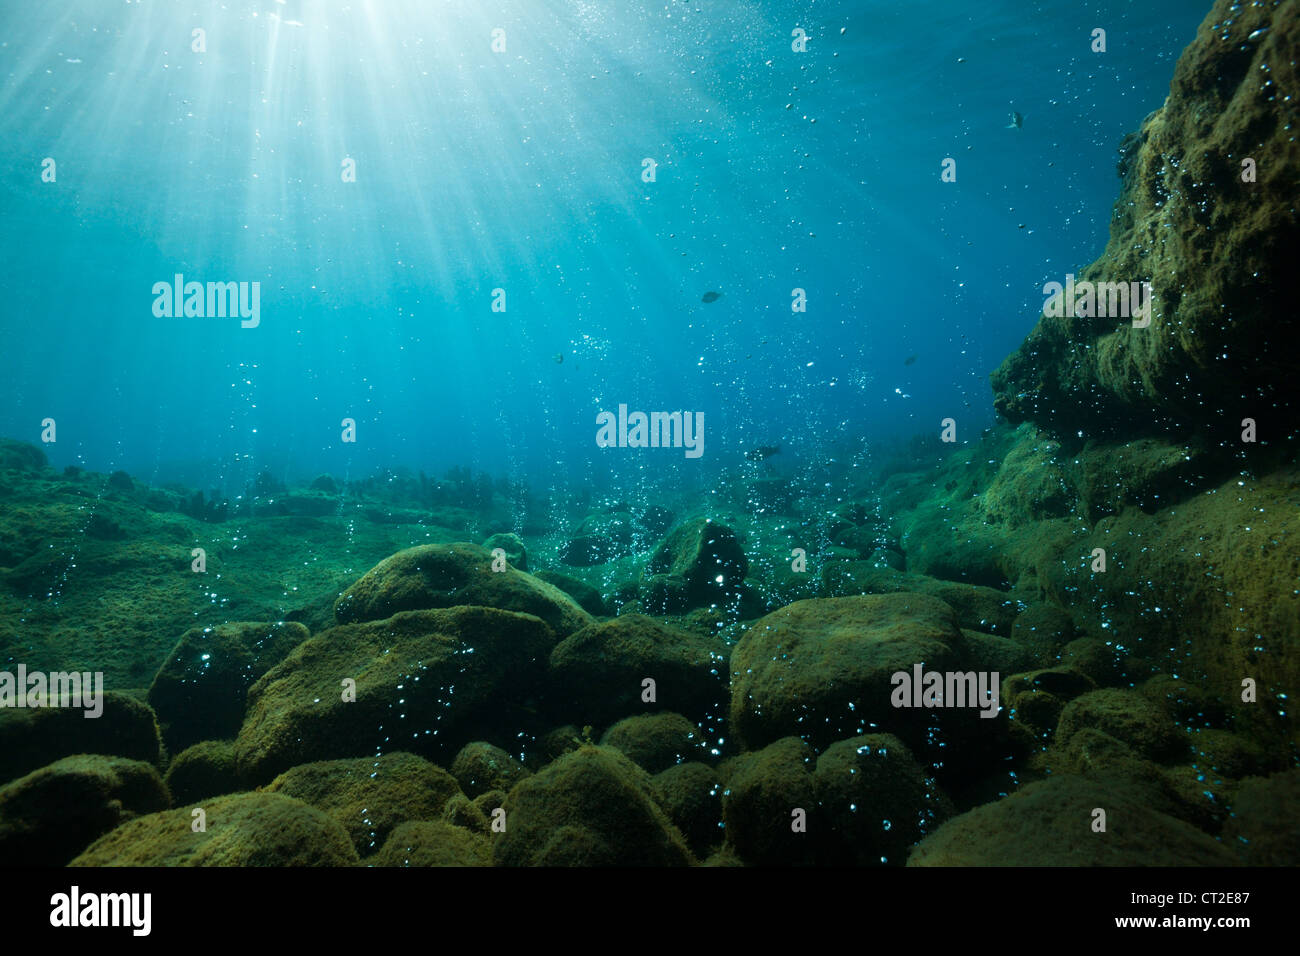 Volcanic Air Bubbles at Champagne Beach, Caribbean Sea, Dominica - Stock Image